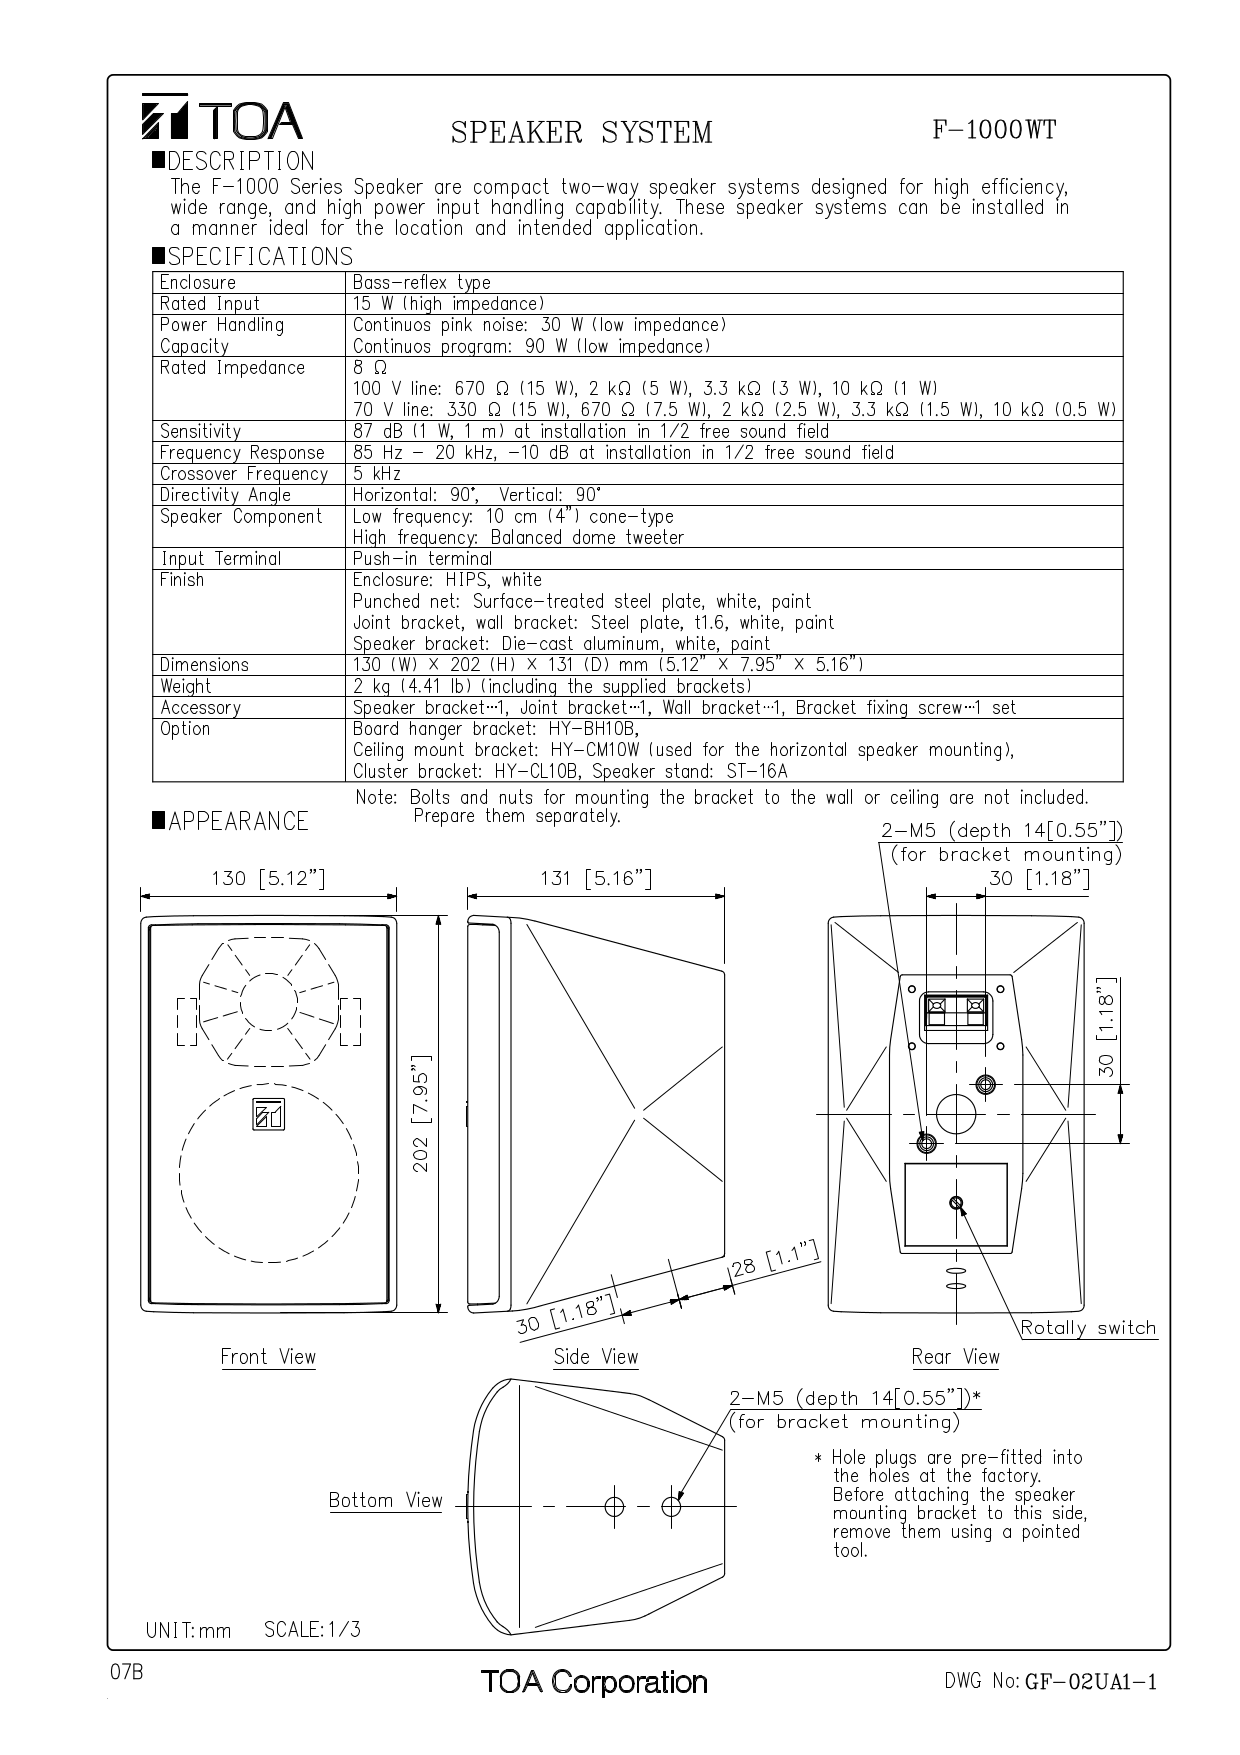 Download free pdf for Toa F-1000WT Speaker System manual